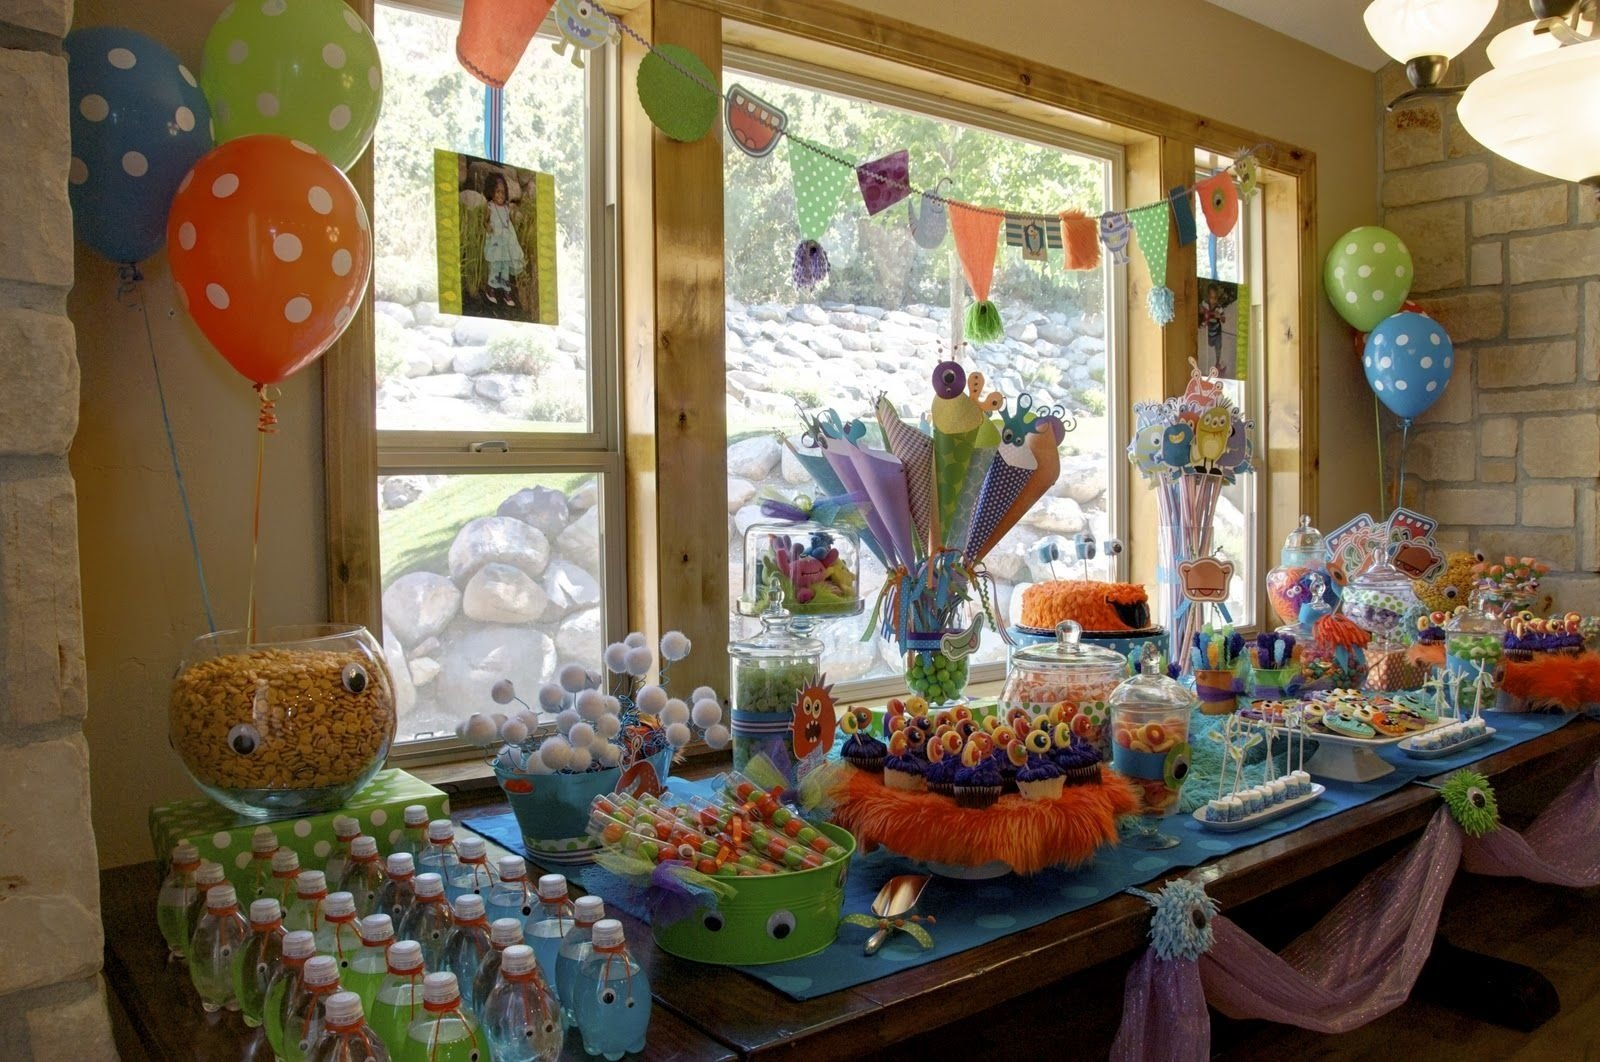 10 Stylish Birthday Ideas For 13 Year Old Girl my friends birthday is in the winter and she wanteaes cause shes 24 2020